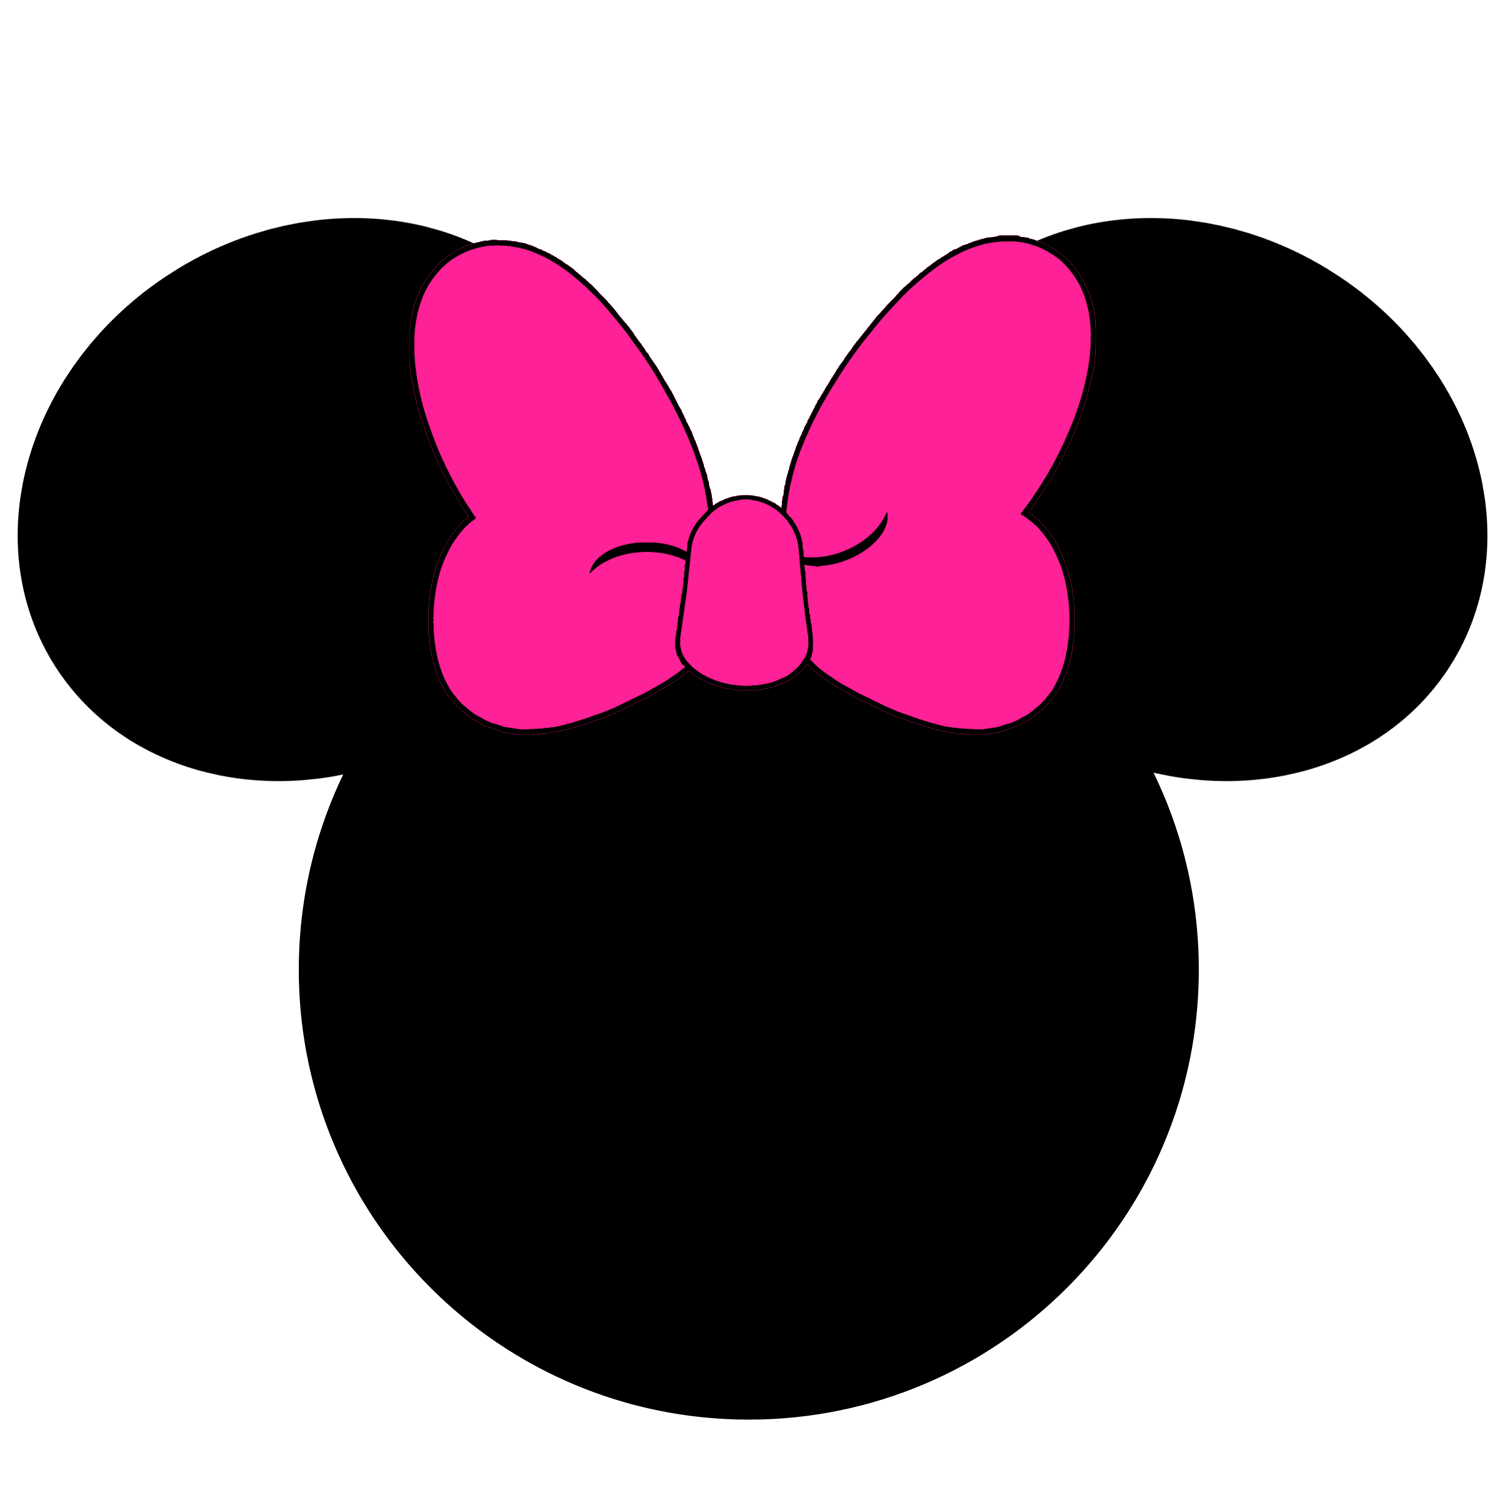 Minnie mouse crown ears clipart clip library Silhouette Minnie Mouse at GetDrawings.com | Free for personal use ... clip library